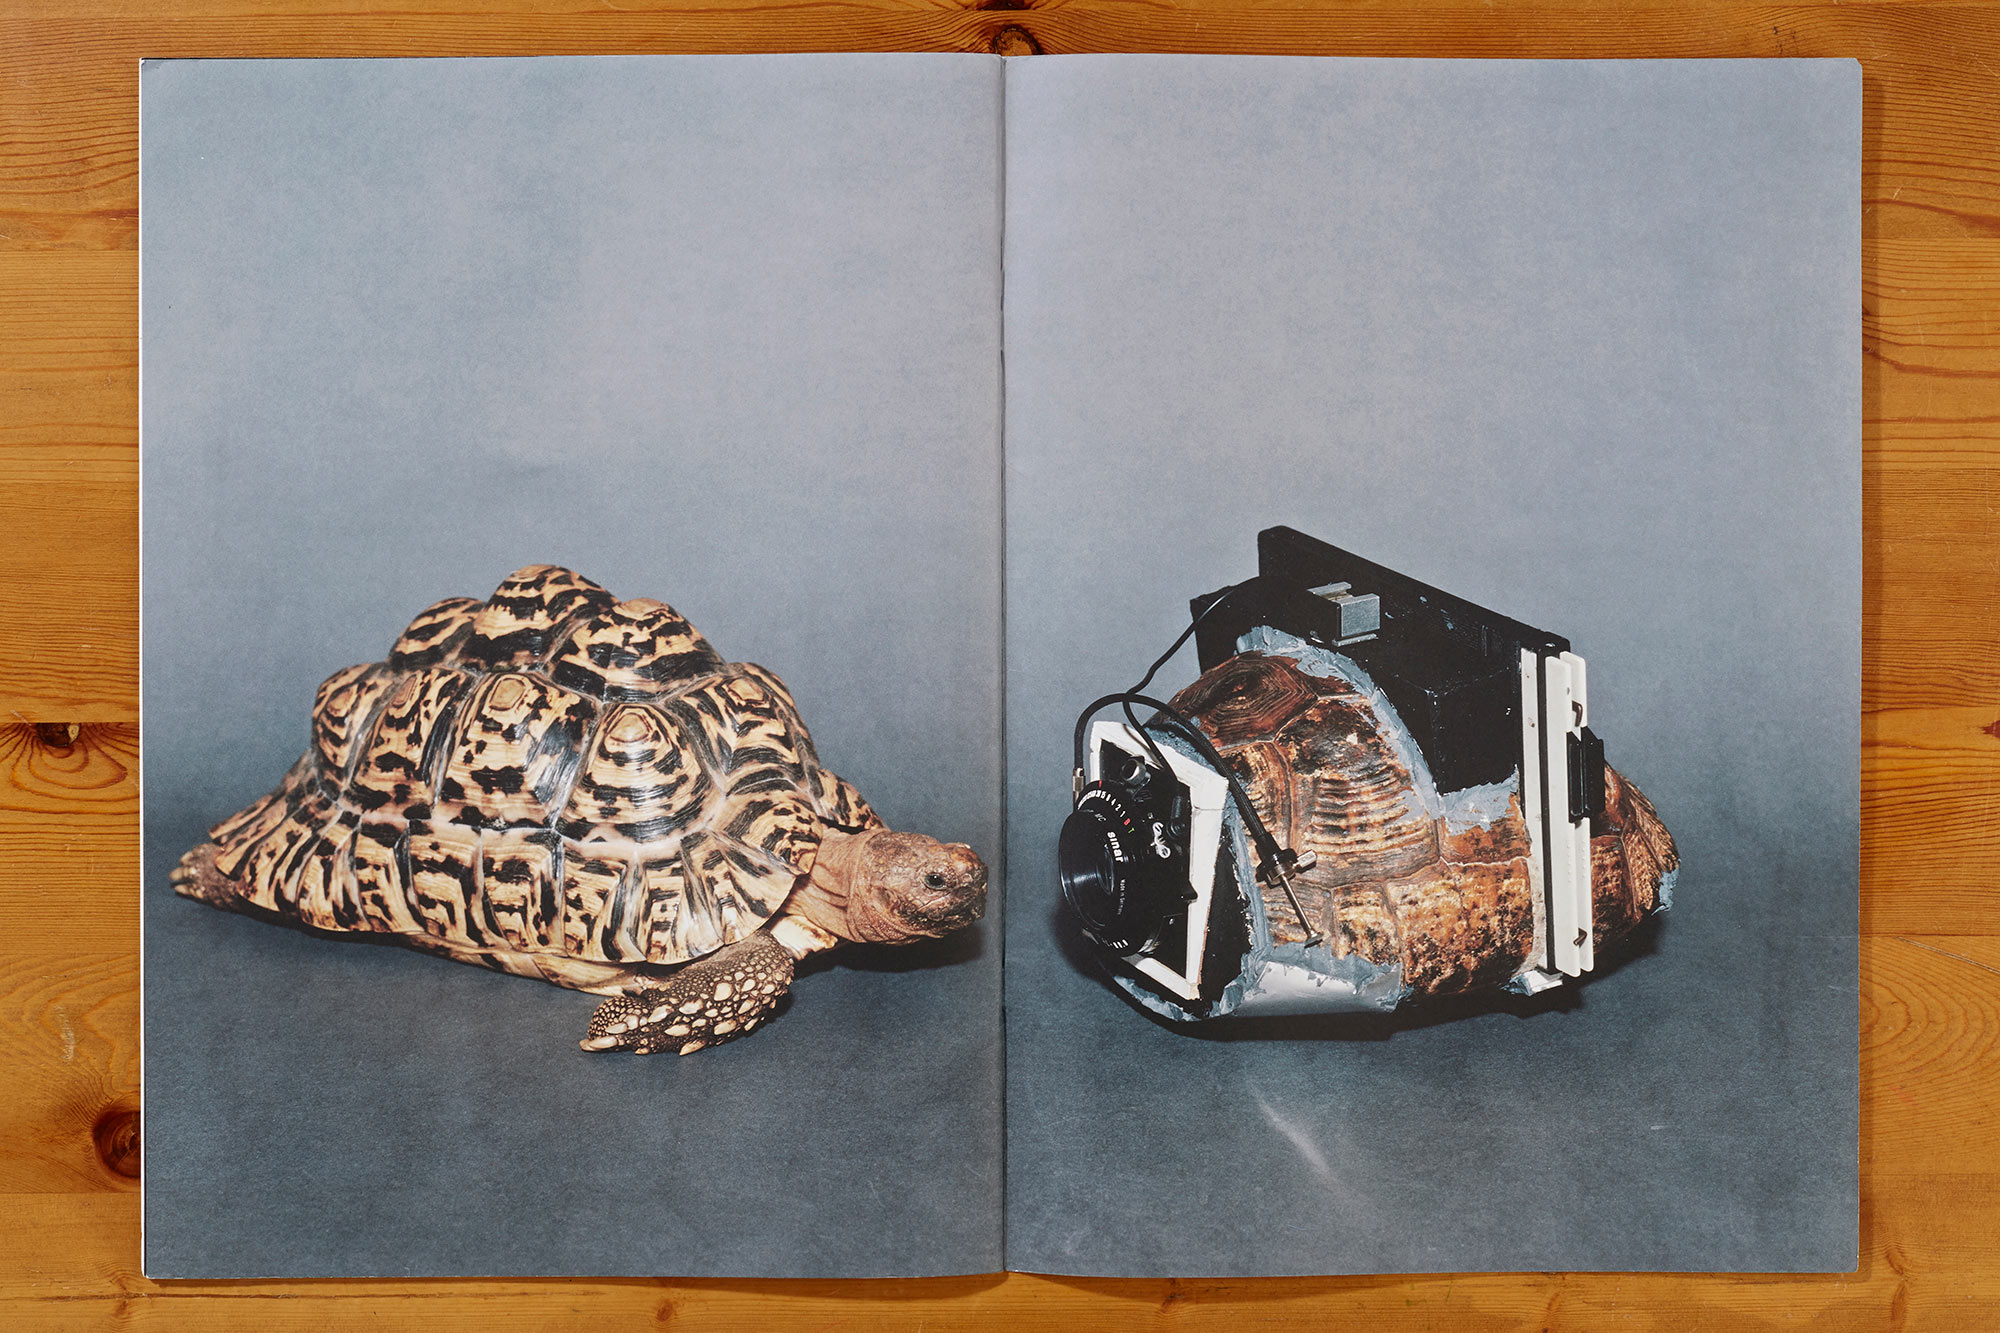 From the book  As Long As It Photographs, It Must Be a Camera  by Taiyo Onorato and Nico Krebs.